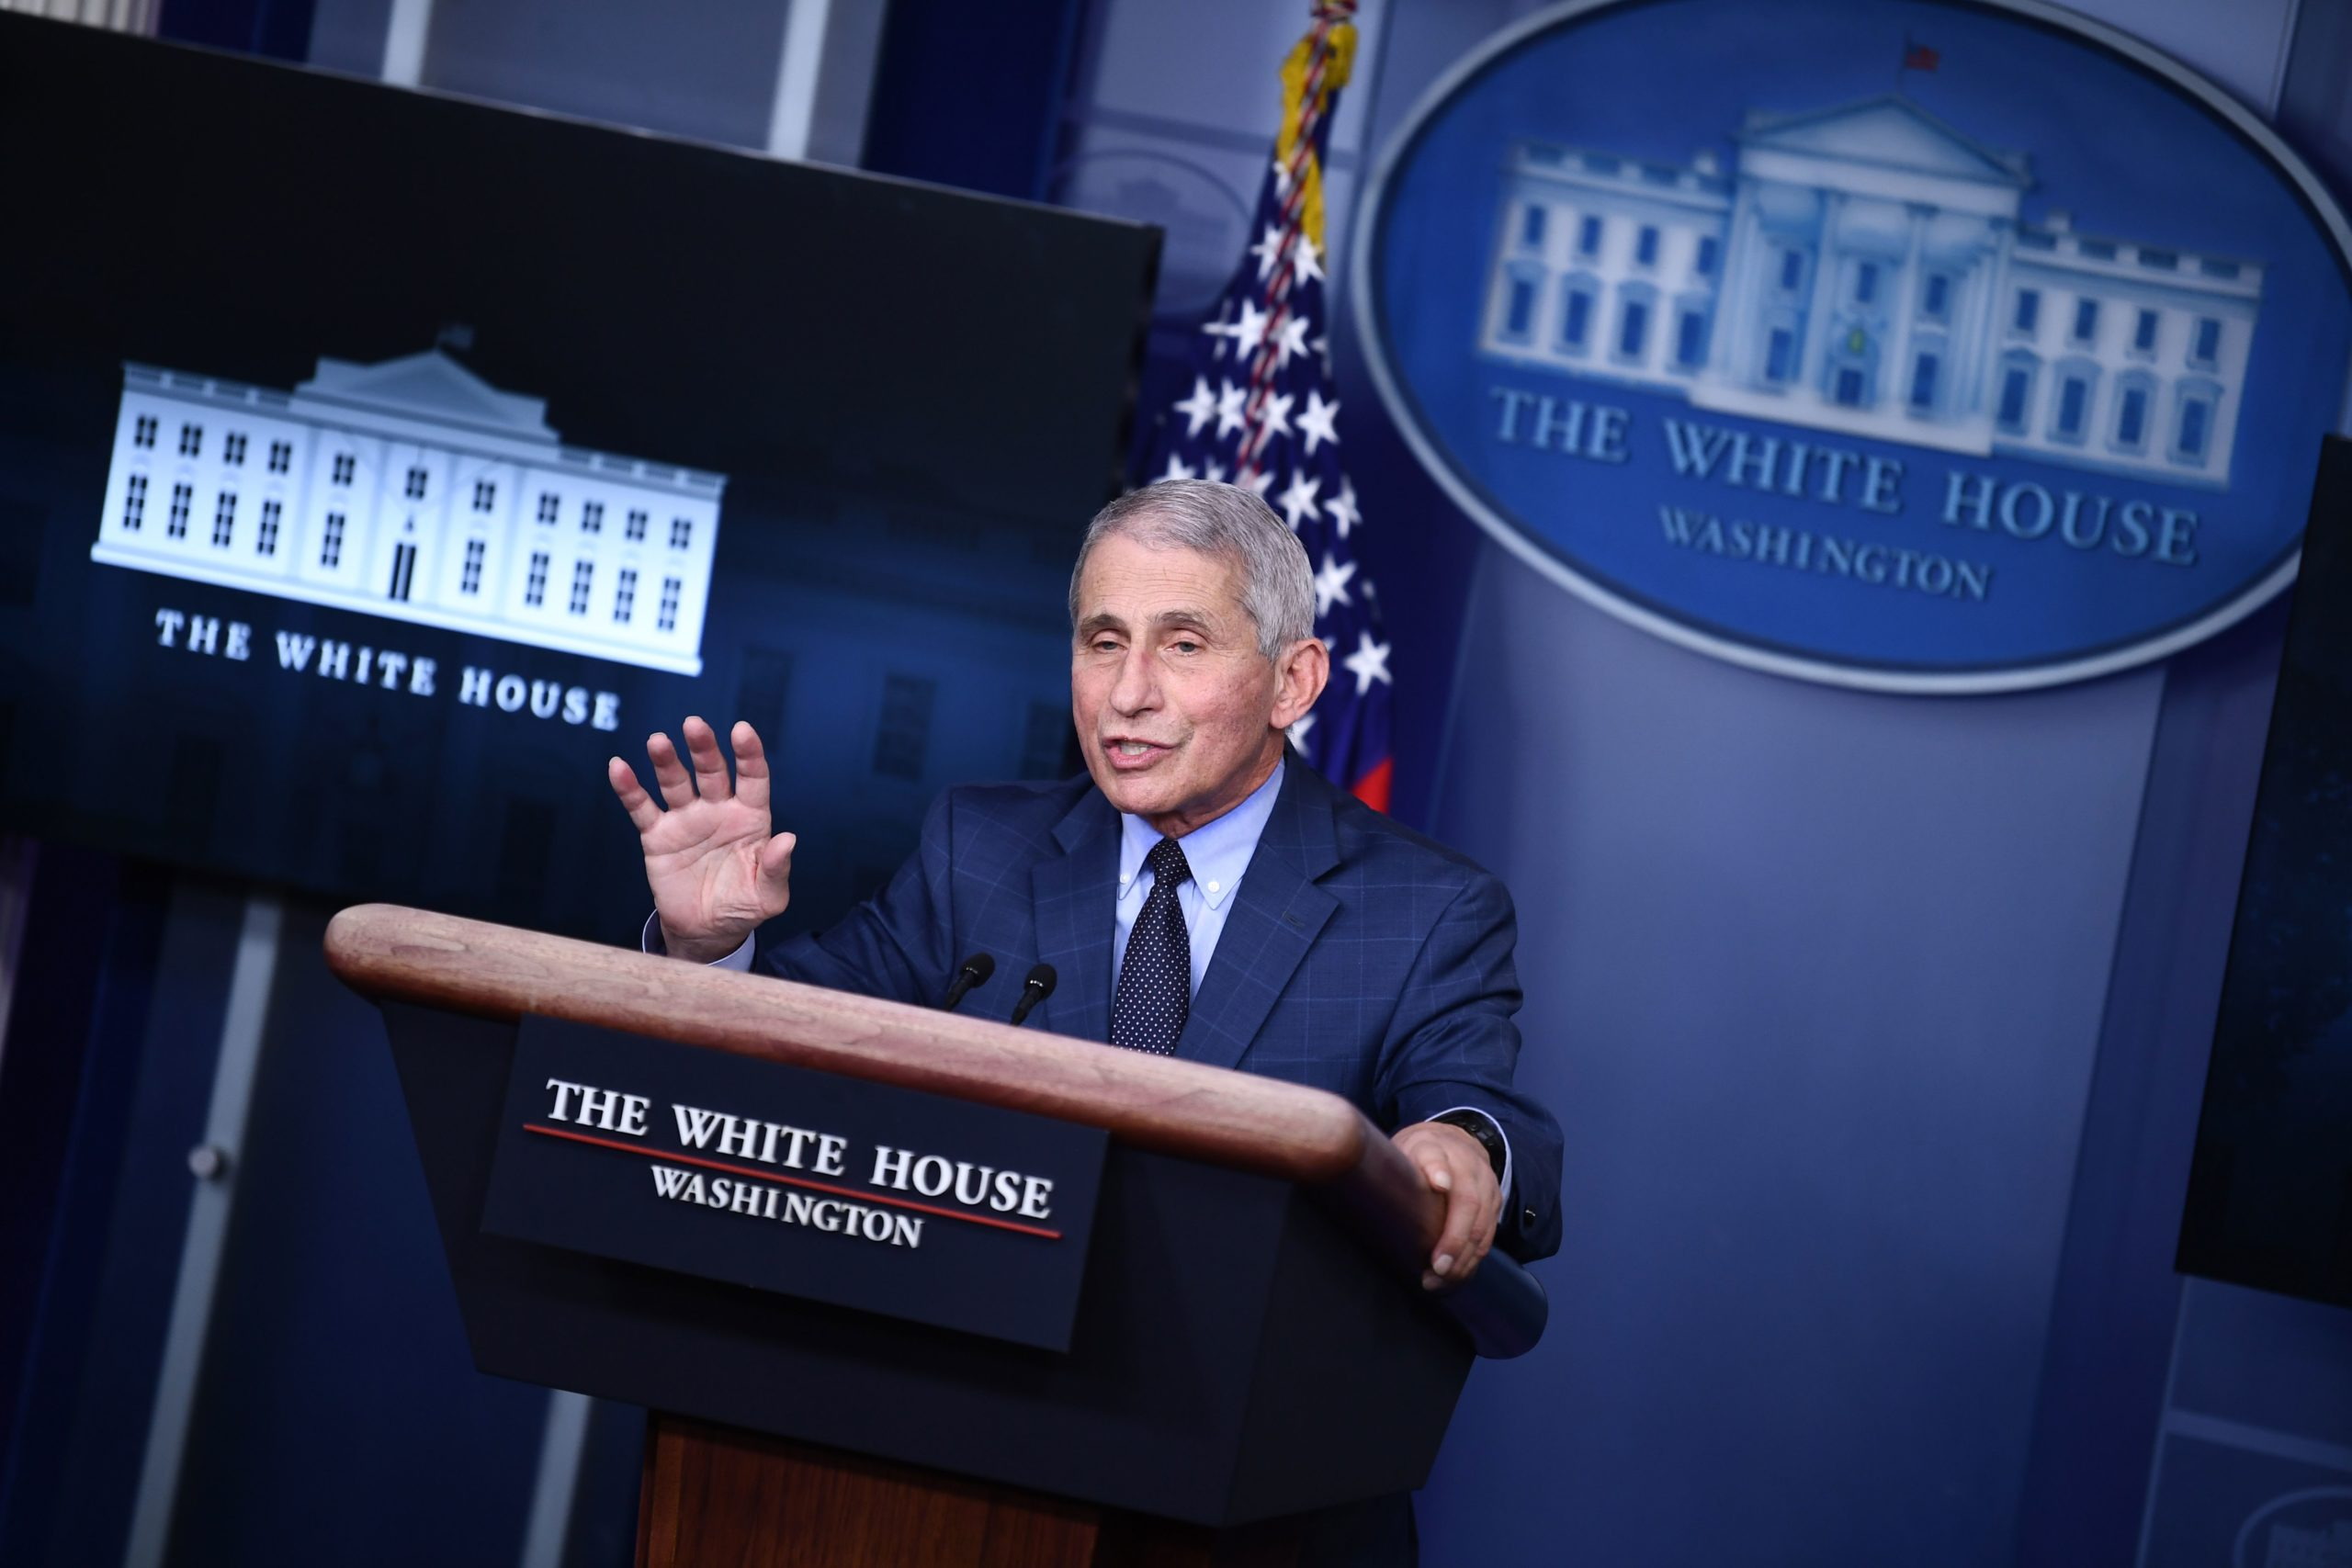 Dr. Anthony Fauci speaks during a White House Coronavirus Task Force. (Photo by BRENDAN SMIALOWSKI/AFP via Getty Images)